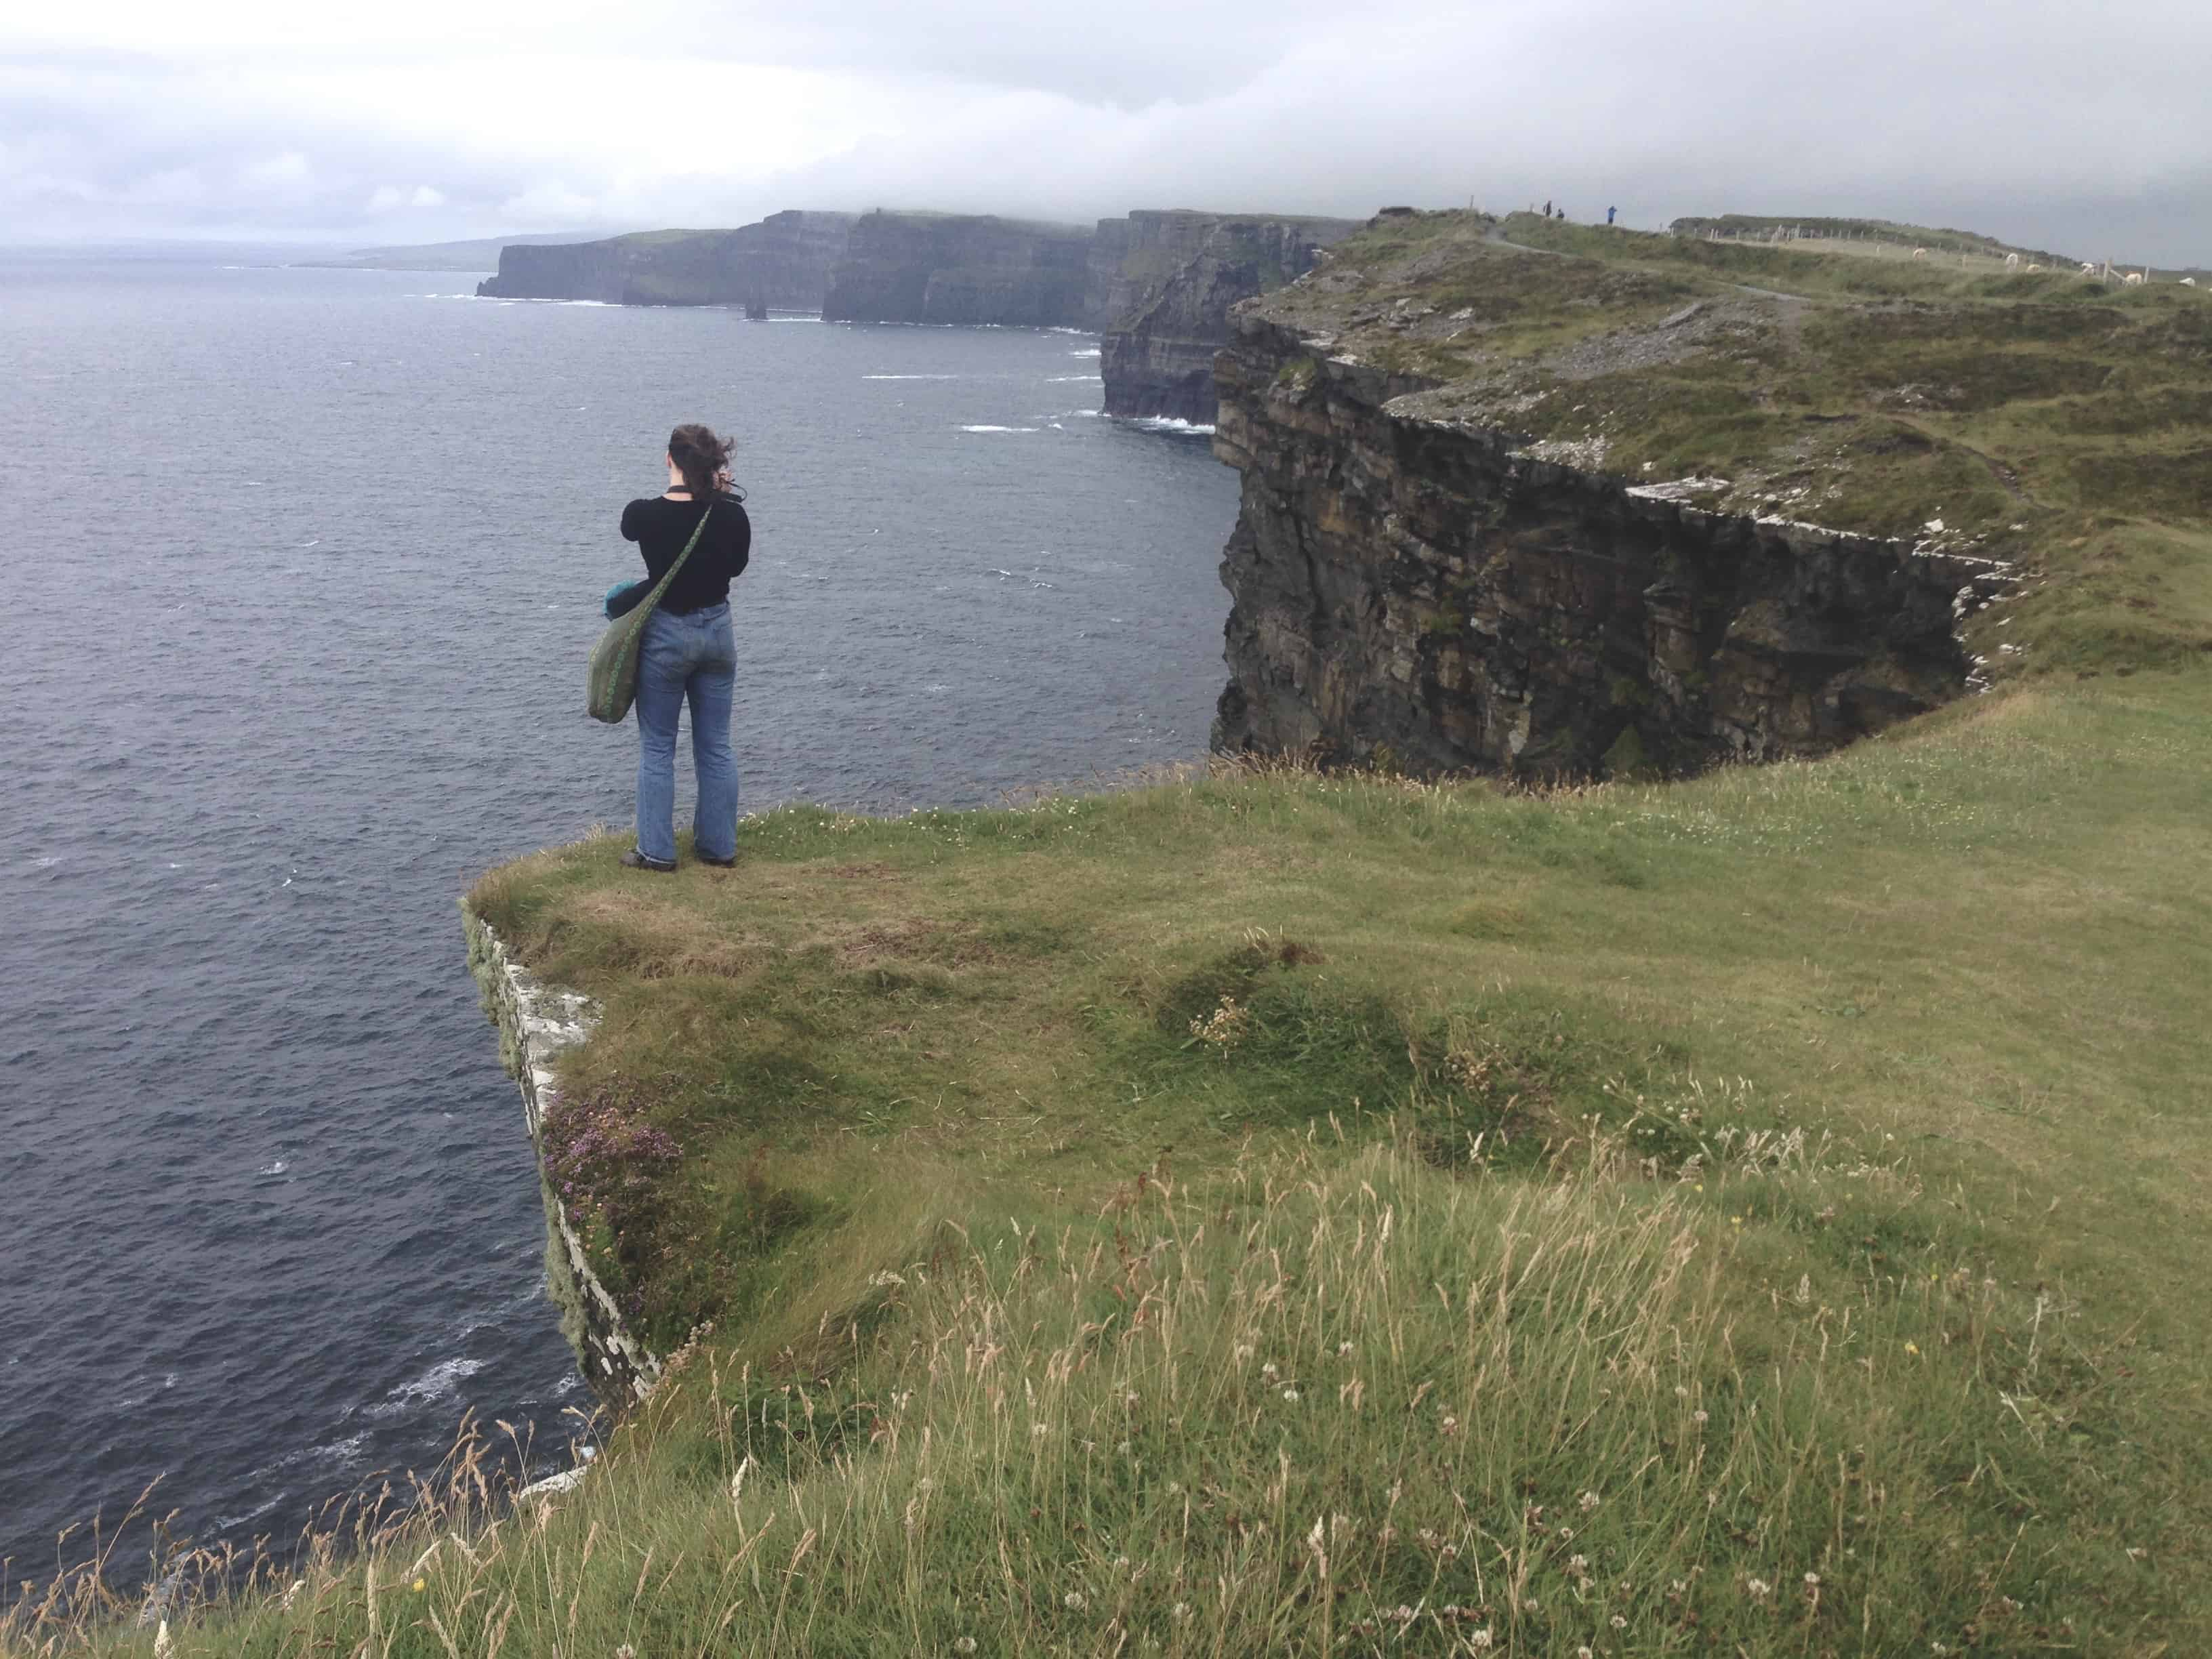 The Cliffs of Moher in Ireland are green and dramatically hover over the ocean